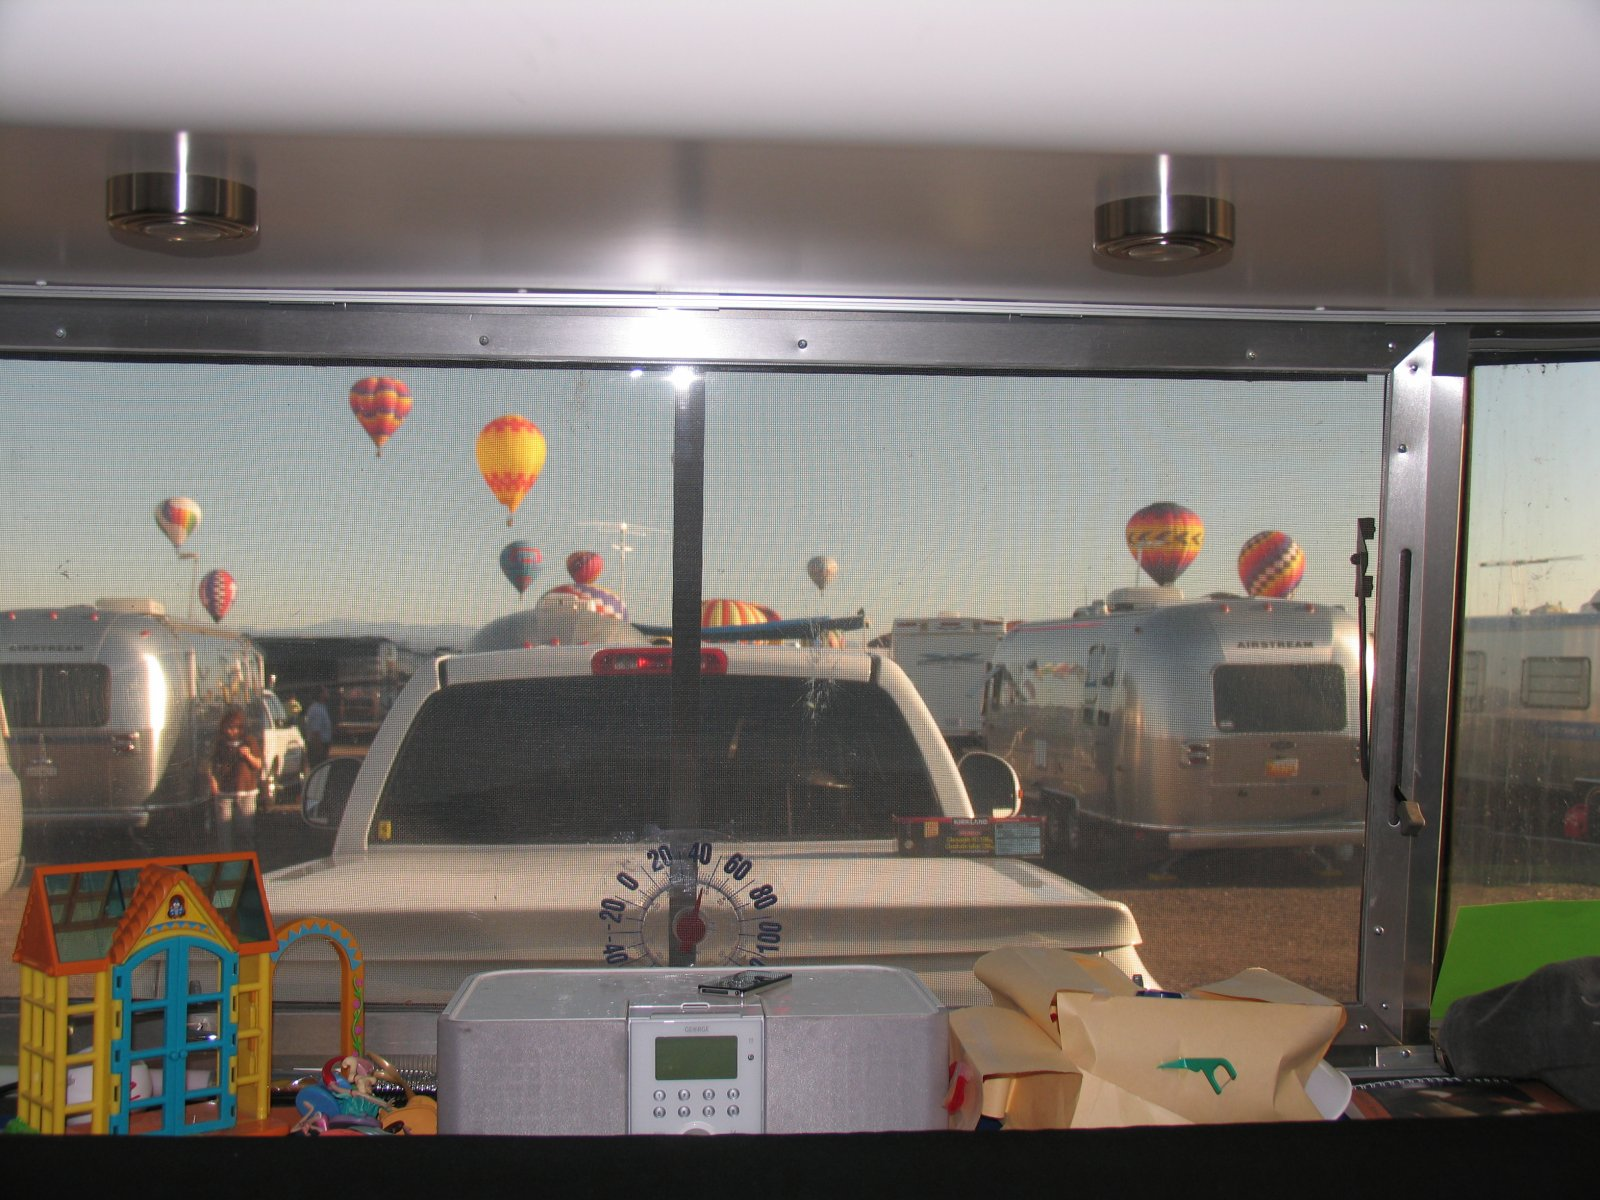 Click image for larger version  Name:Balloon Fiesta (98).jpg Views:70 Size:305.7 KB ID:69259